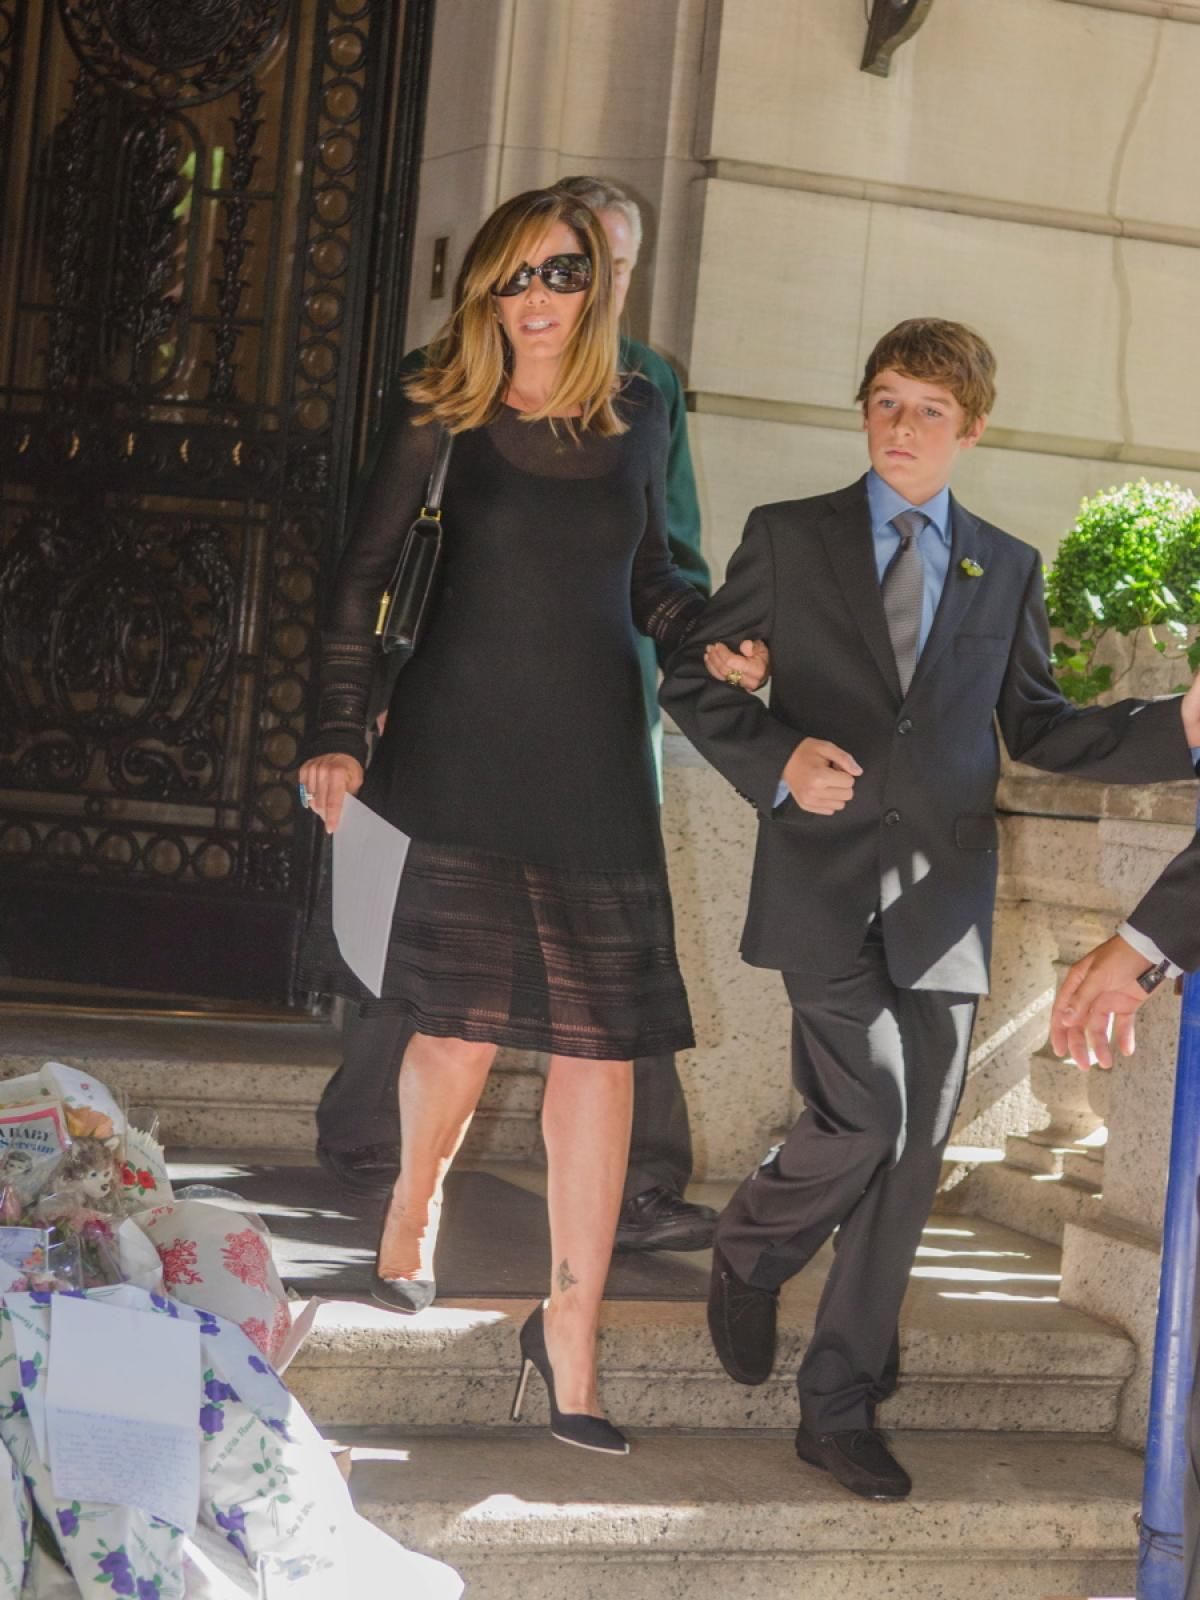 Friends and family gathered at Temple Emanu-El in New York City on Sept. 7, 2014 to say goodbye to iconic comedian Joan Rivers.